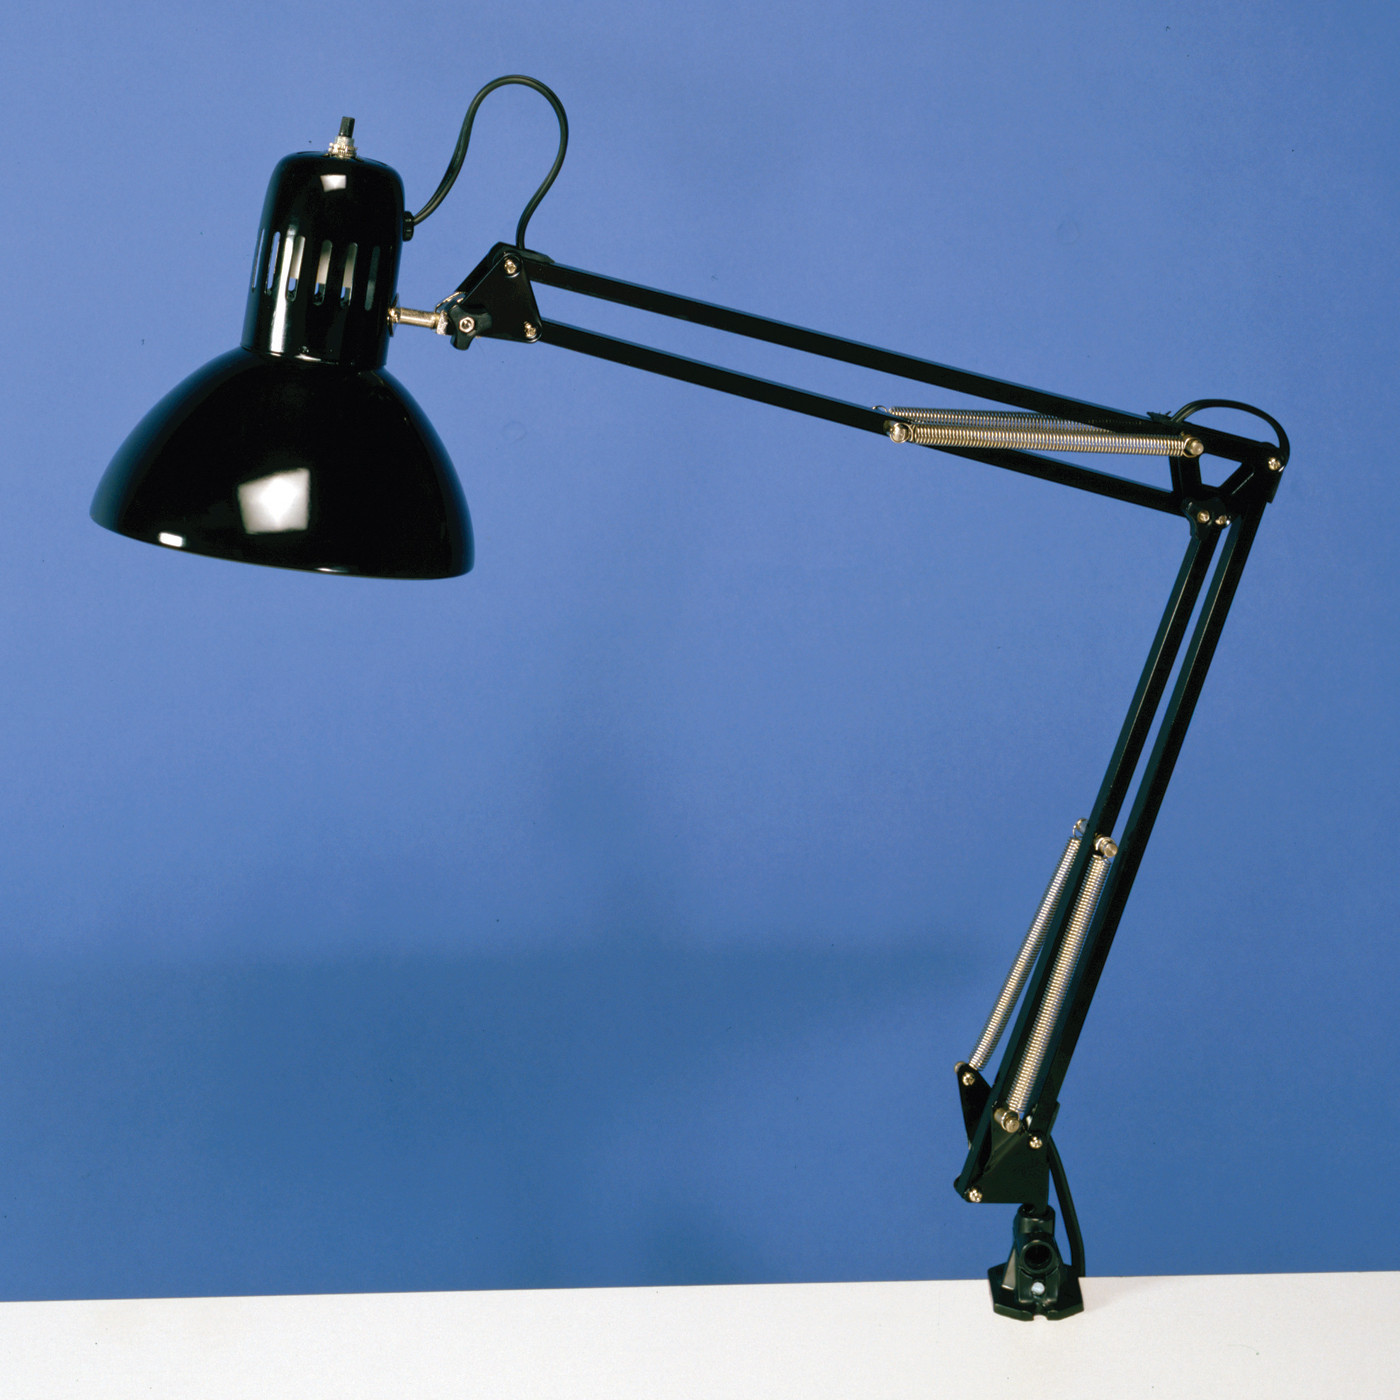 Best ideas about Swing Arm Desk Lamp . Save or Pin Studio Designs Swing Arm Desk Lamp Now.